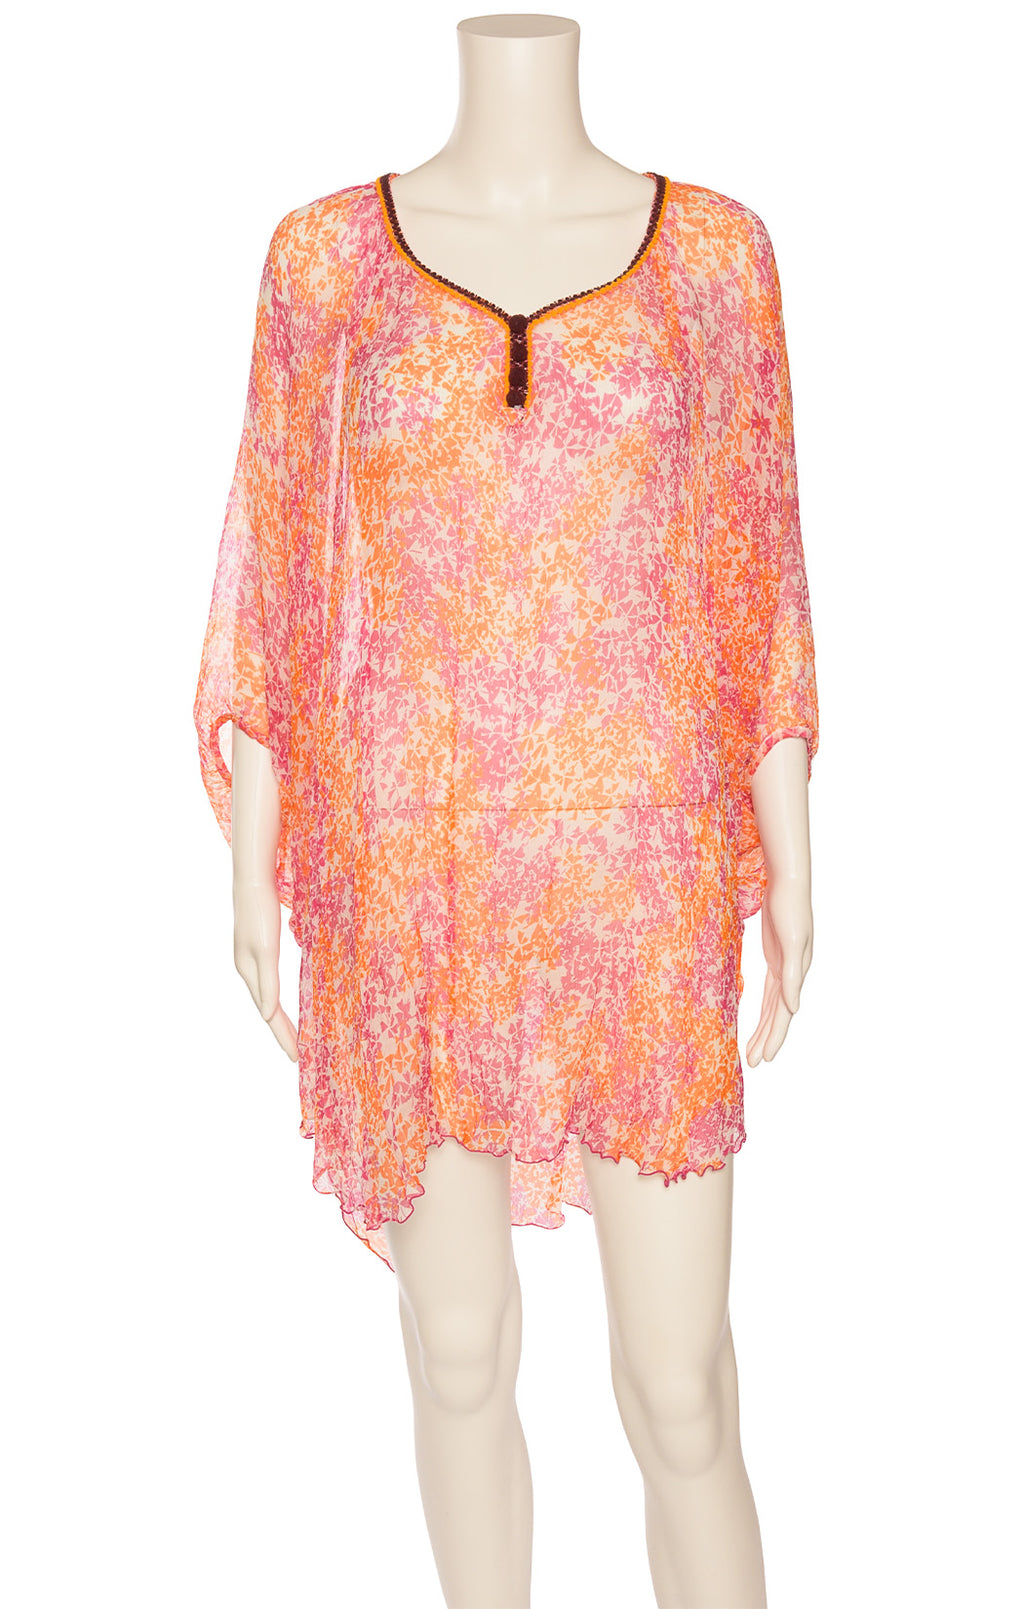 Front view of POUPETTE Top/Coverup Size: O/S